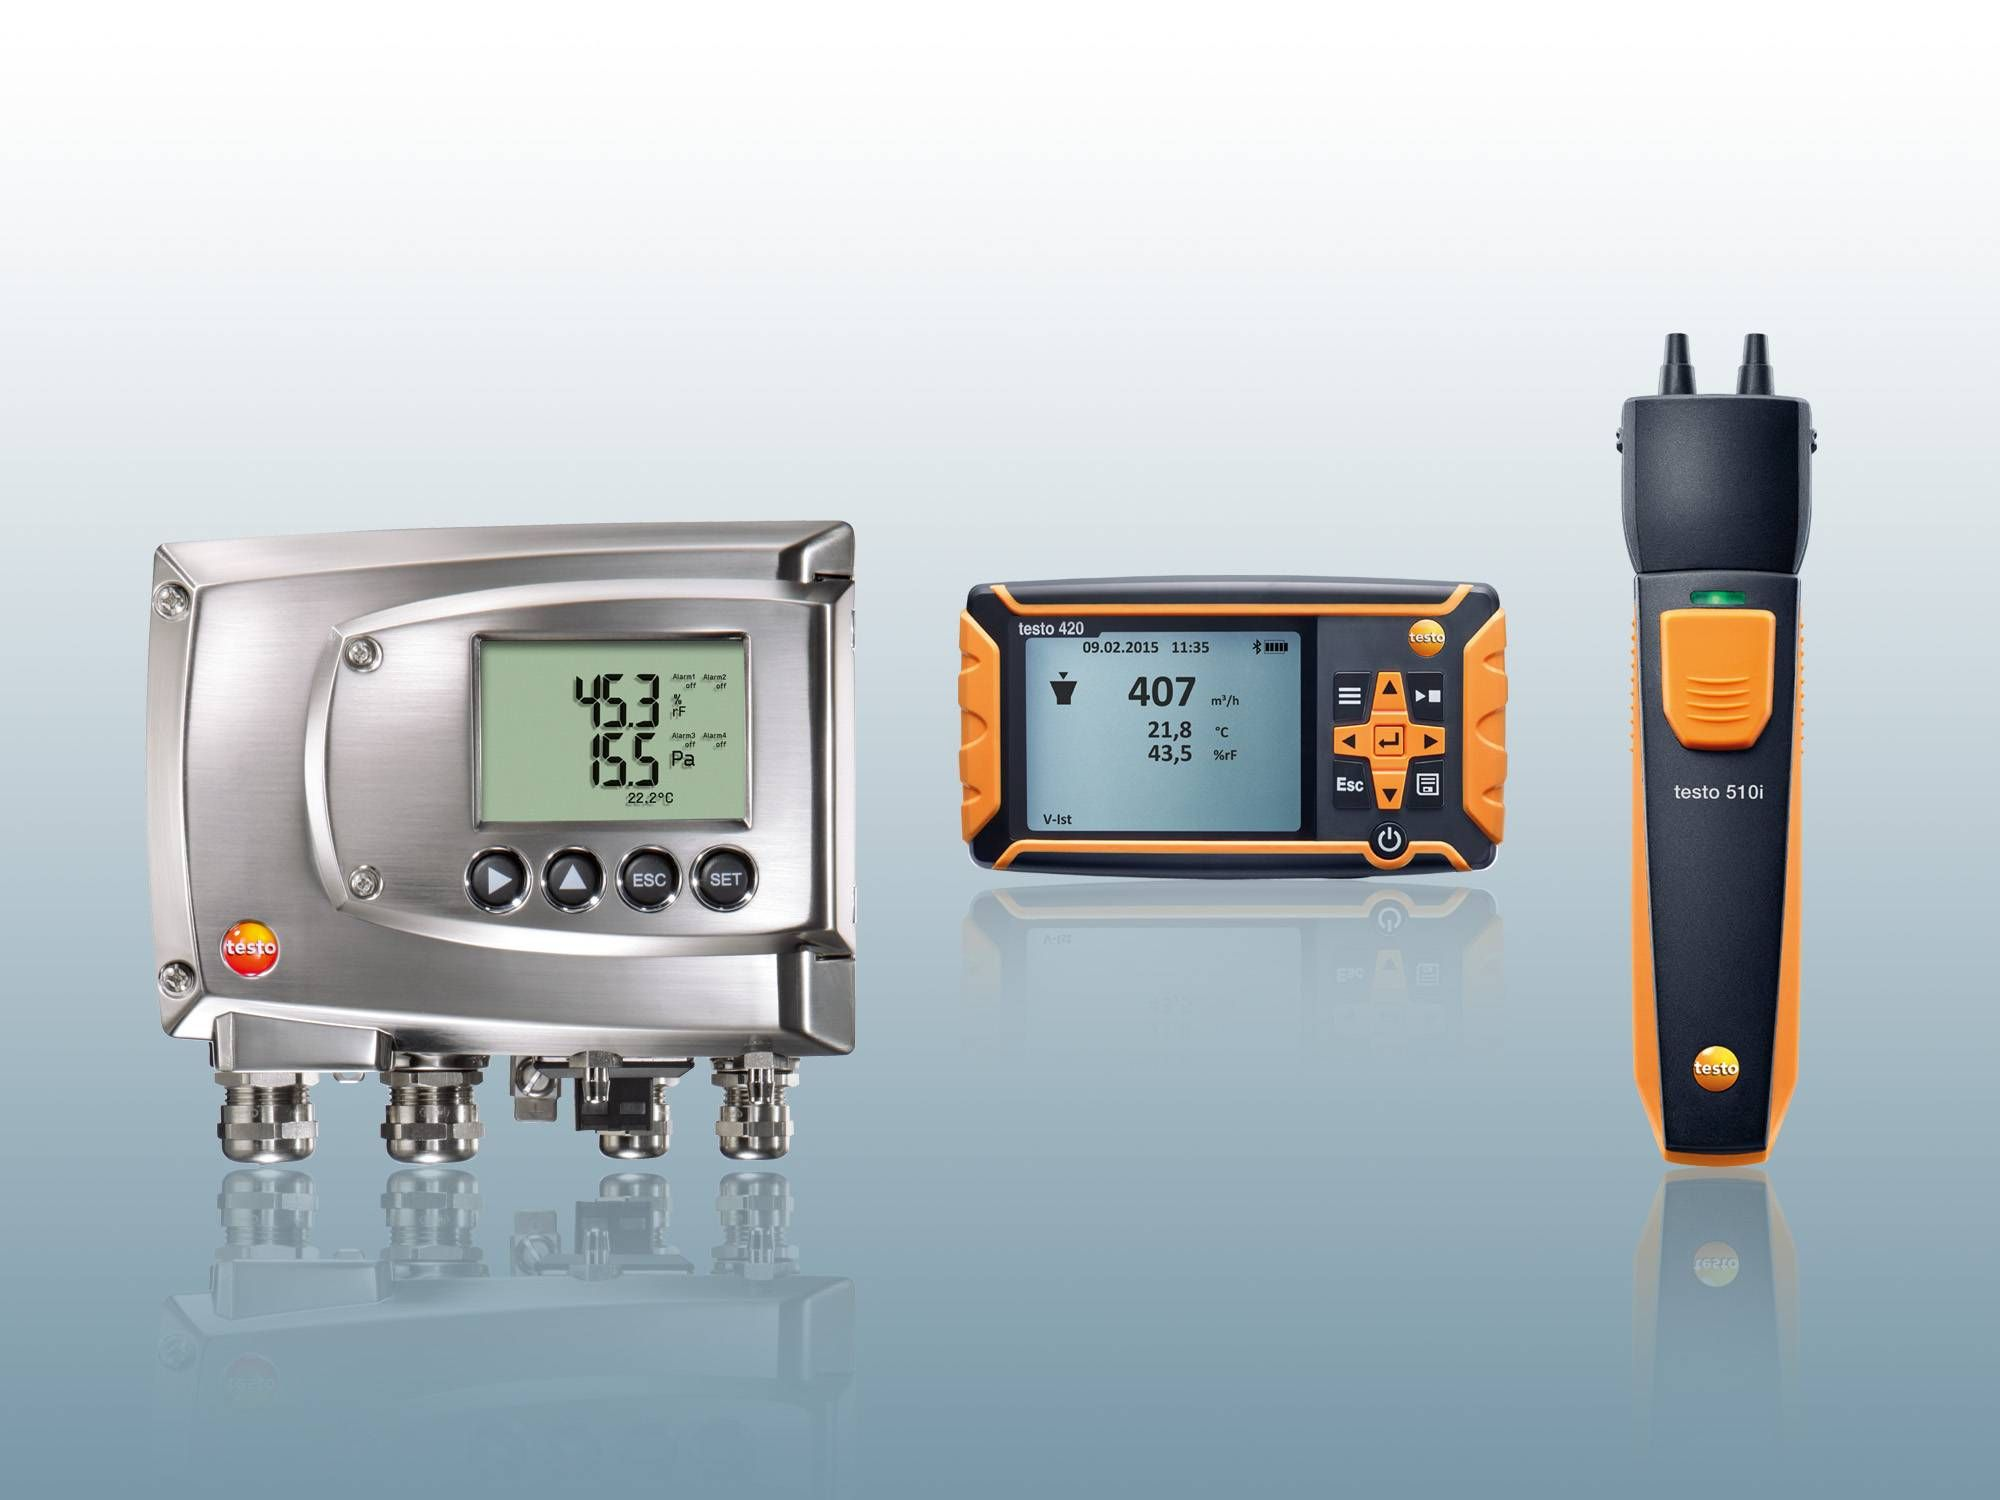 More pressure measuring instruments from Testo